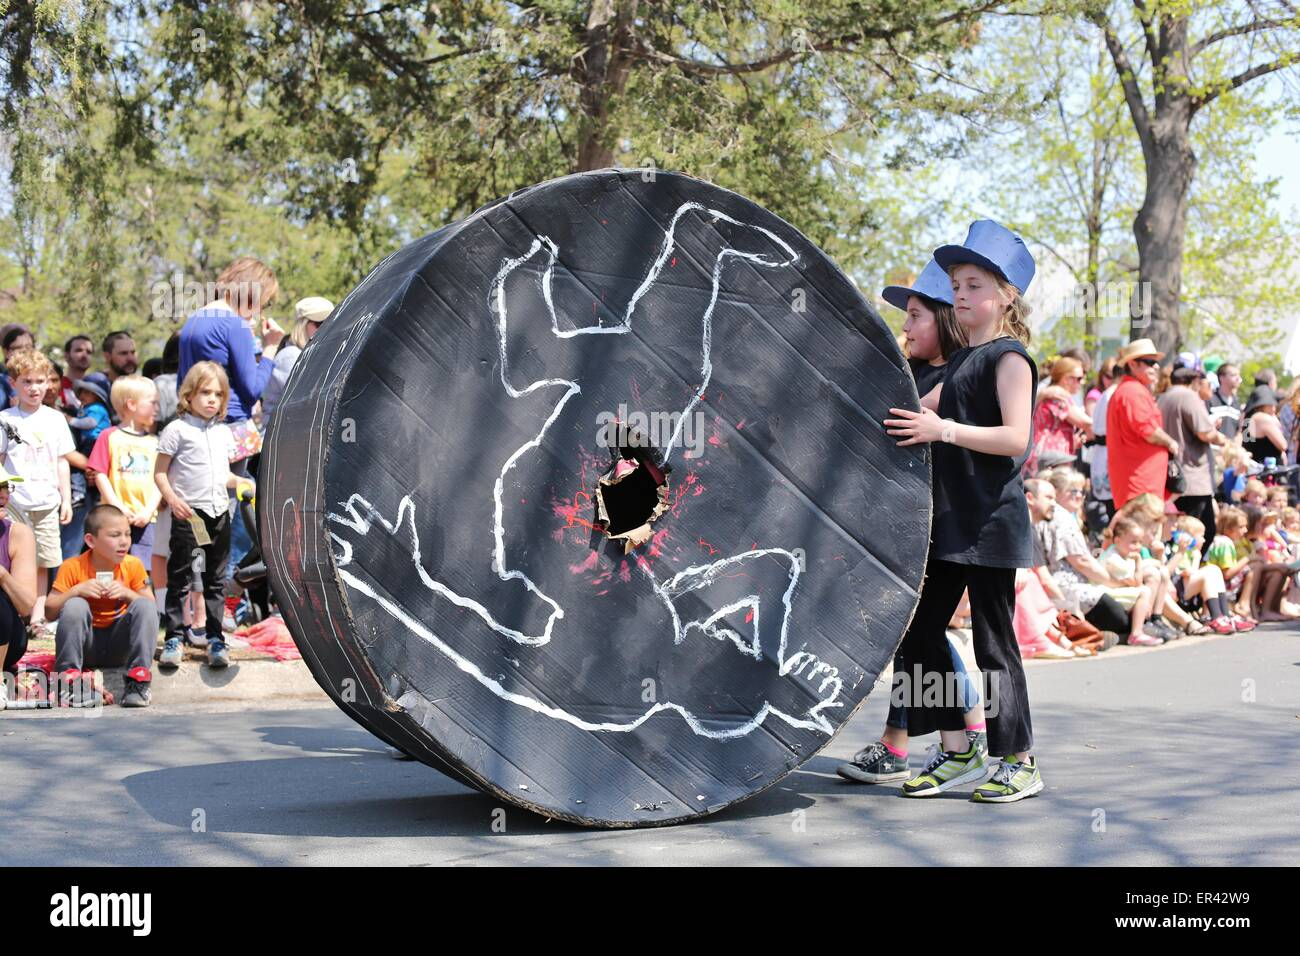 Children in the Minneapolis may day parade protesting the shooting of African American men by the police. - Stock Image